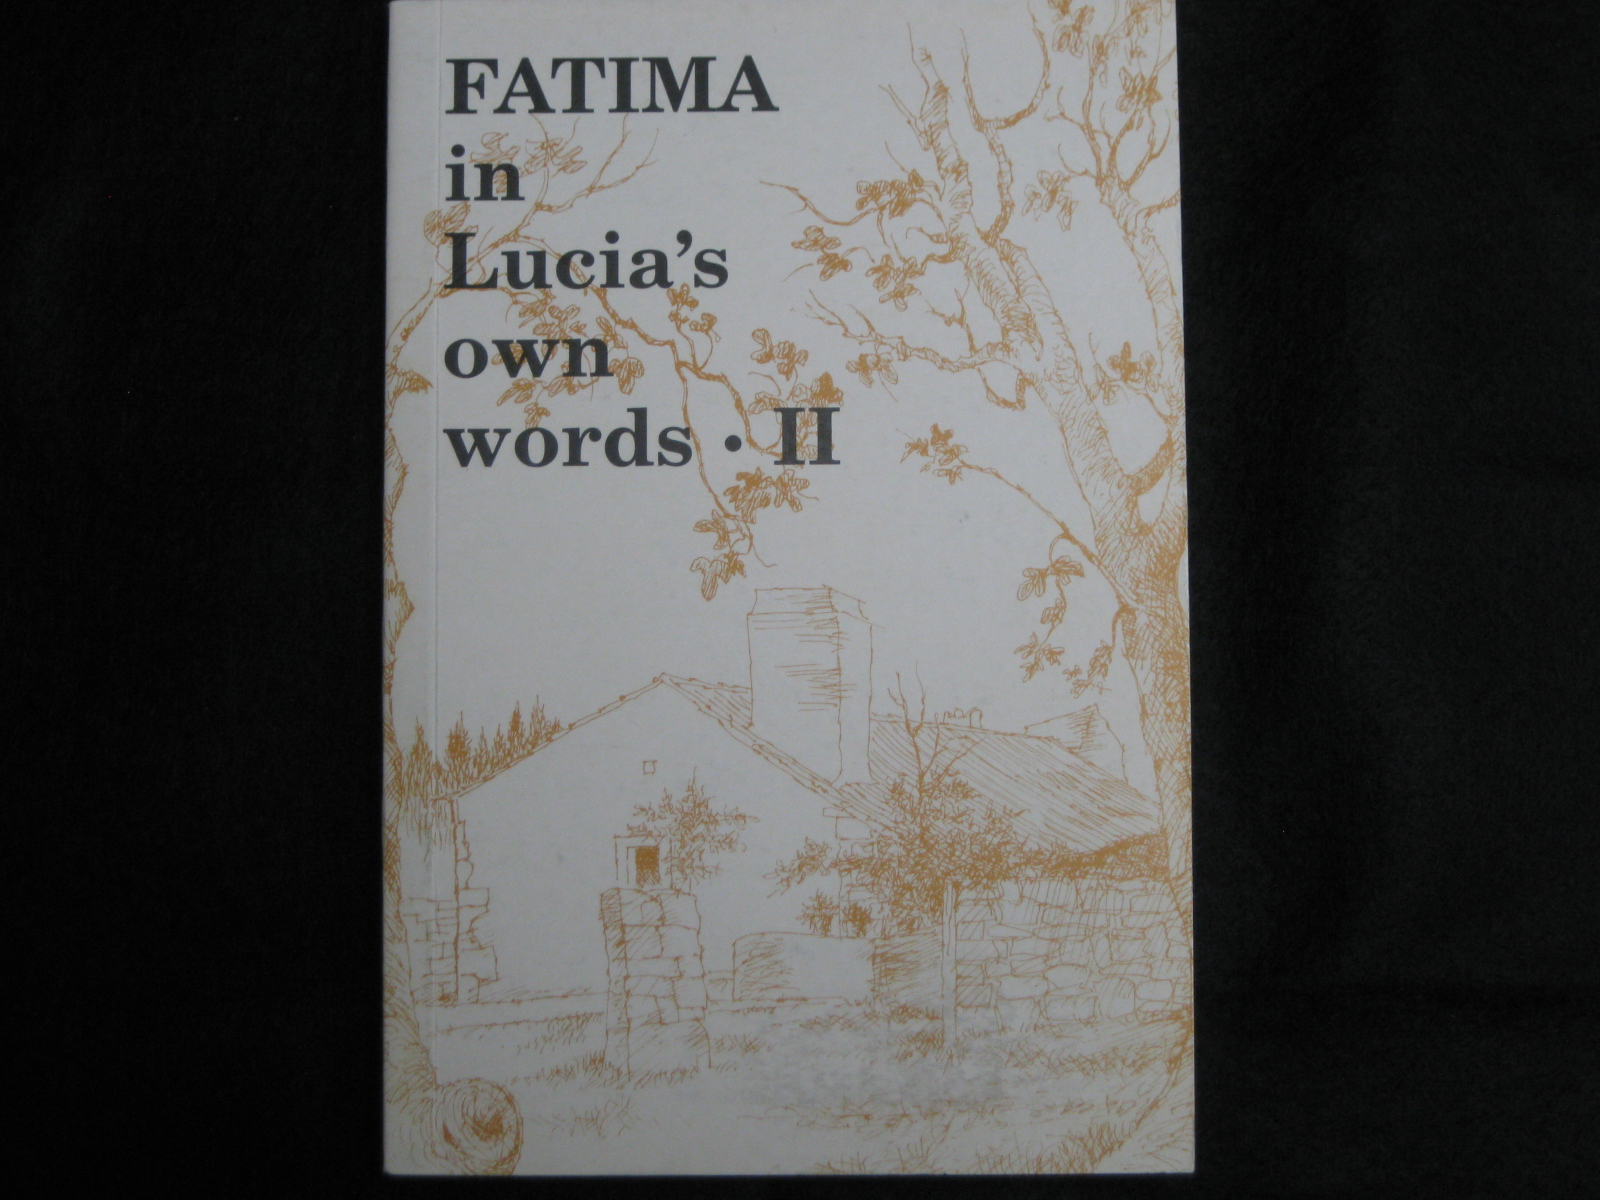 FATIMA IN LUCIA'S OWN WORDS II